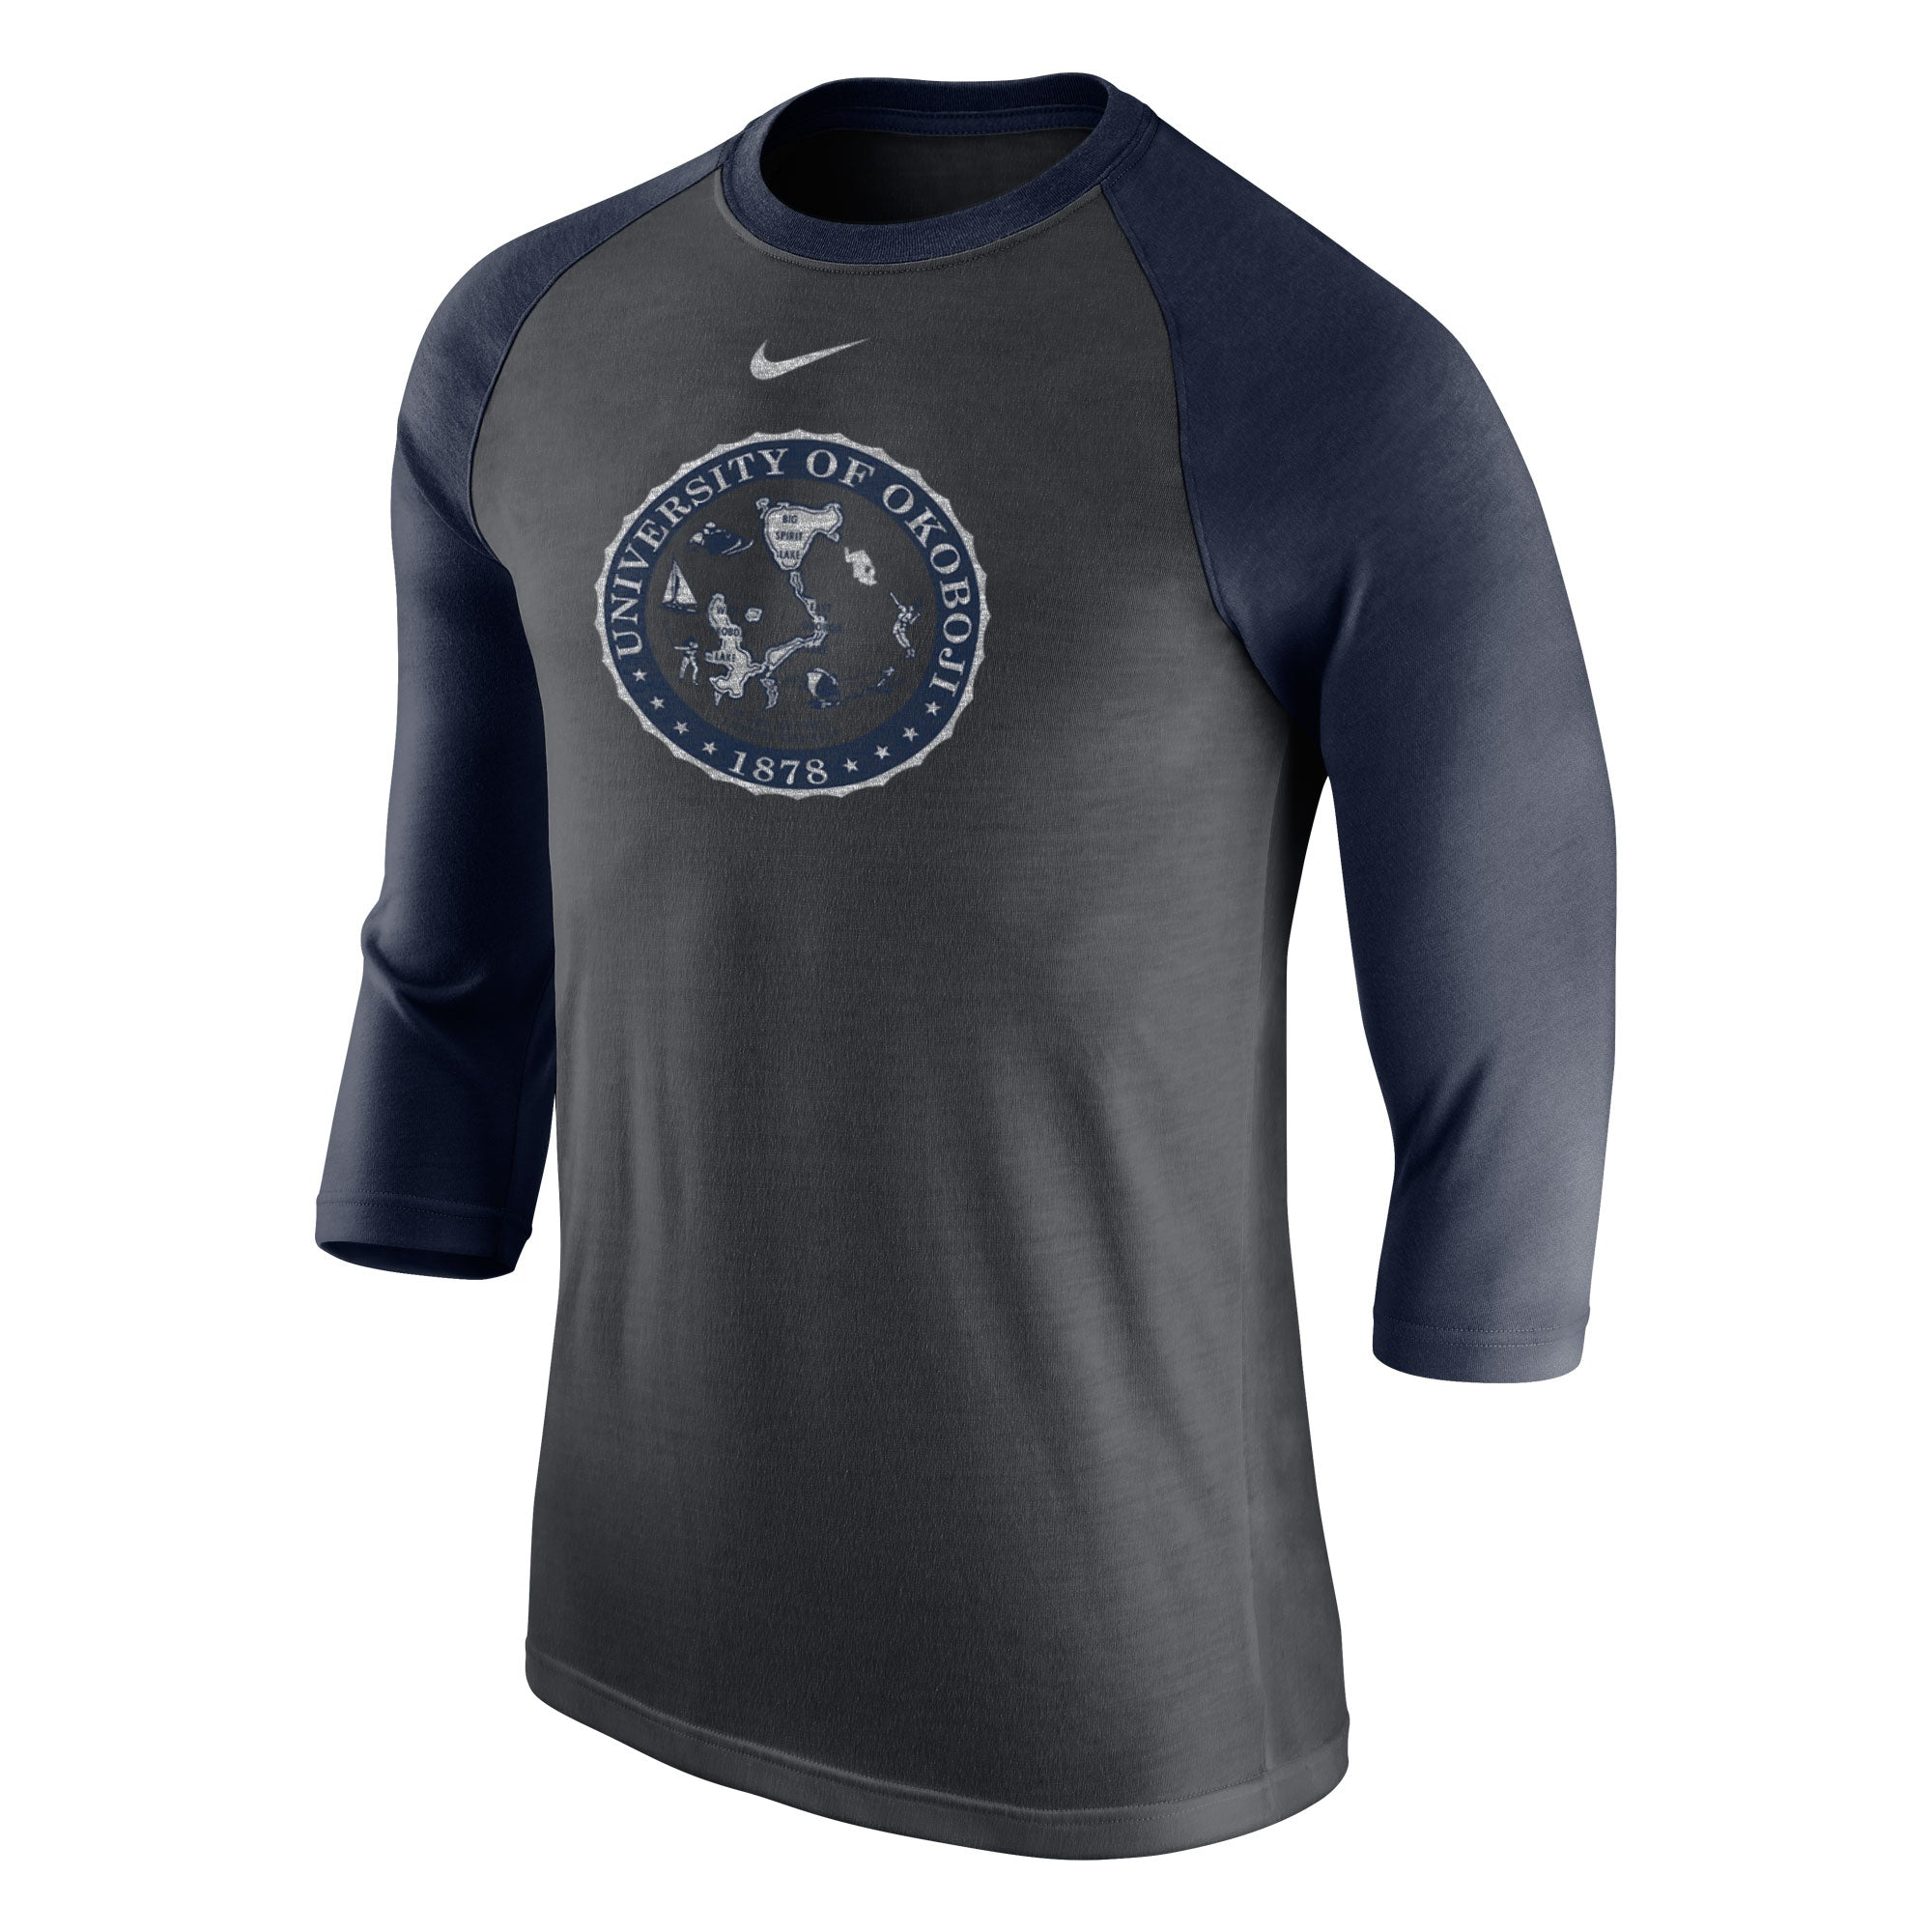 Tri-Blend 3/4 Raglan Tee - Navy Heather